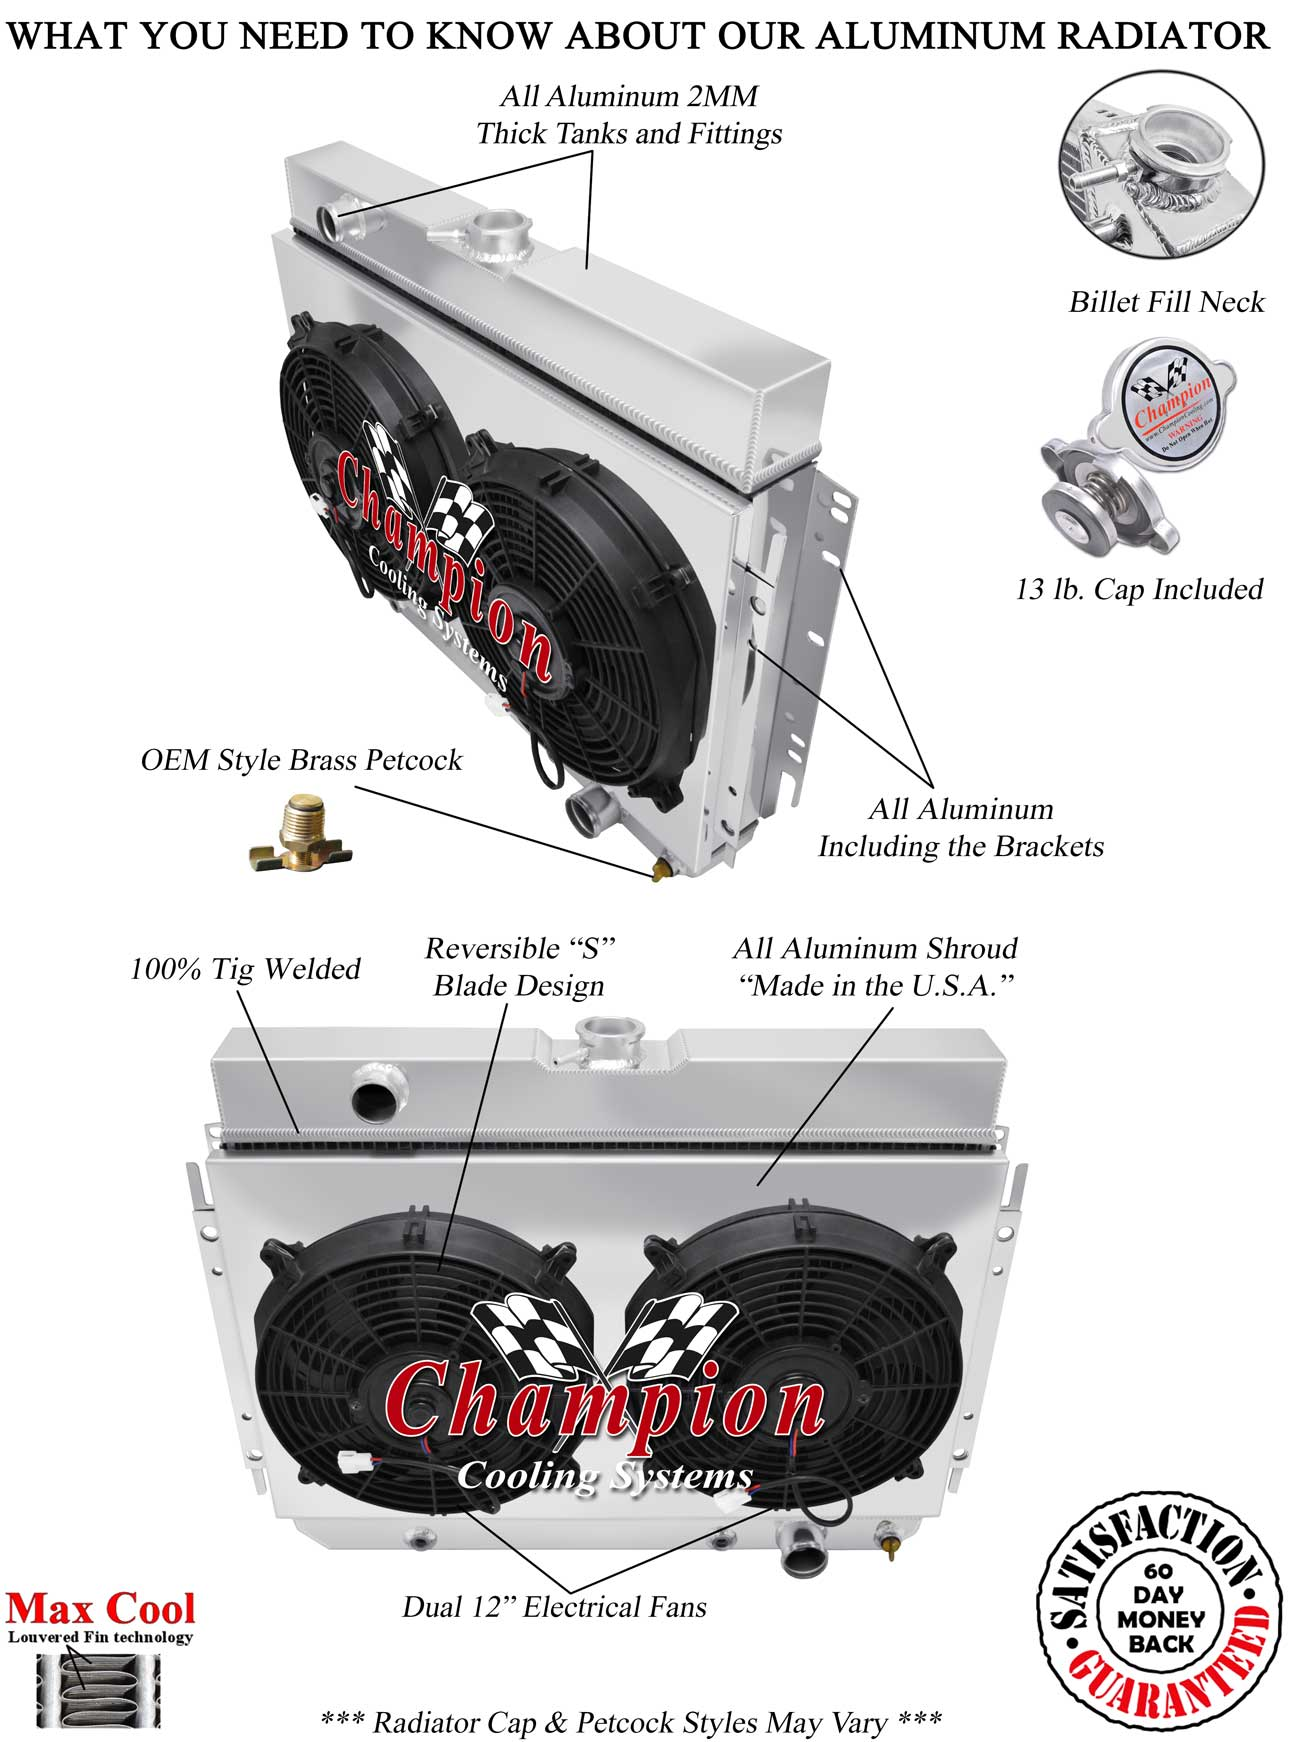 https://www.championcooling.com/photos/Photos%20White/With%20Fans/W-Shroud/289/289FS_white_Diagram_Champion.jpg